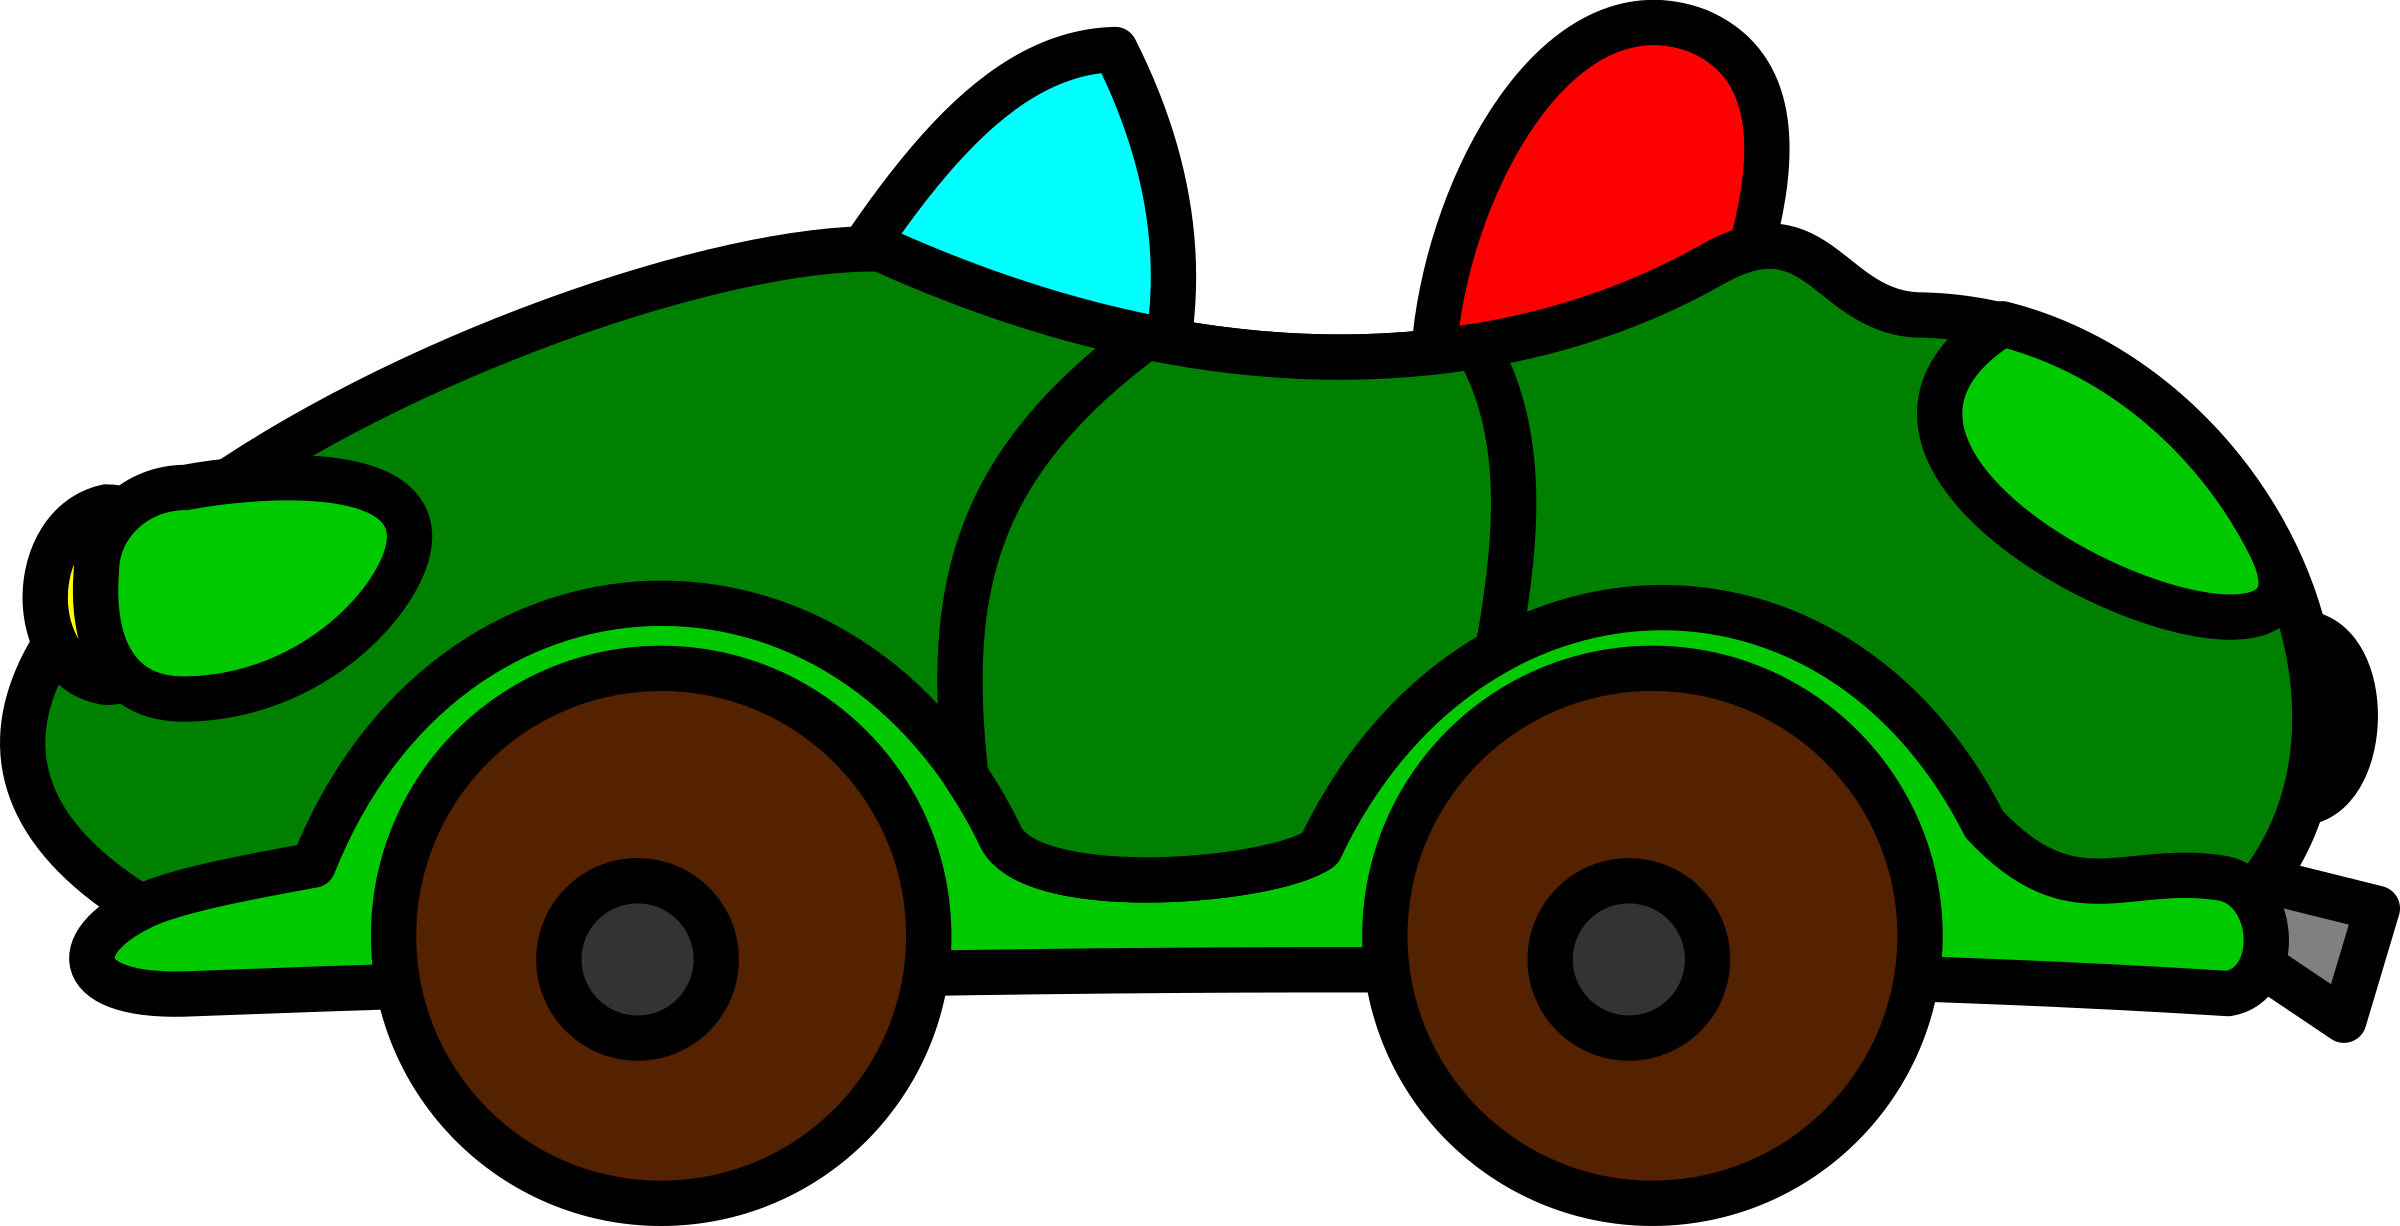 Car clipart green vector stock Car Clipart Png. BIG IMAGE (PNG) Car Clipart Png E - Deltasport.co vector stock